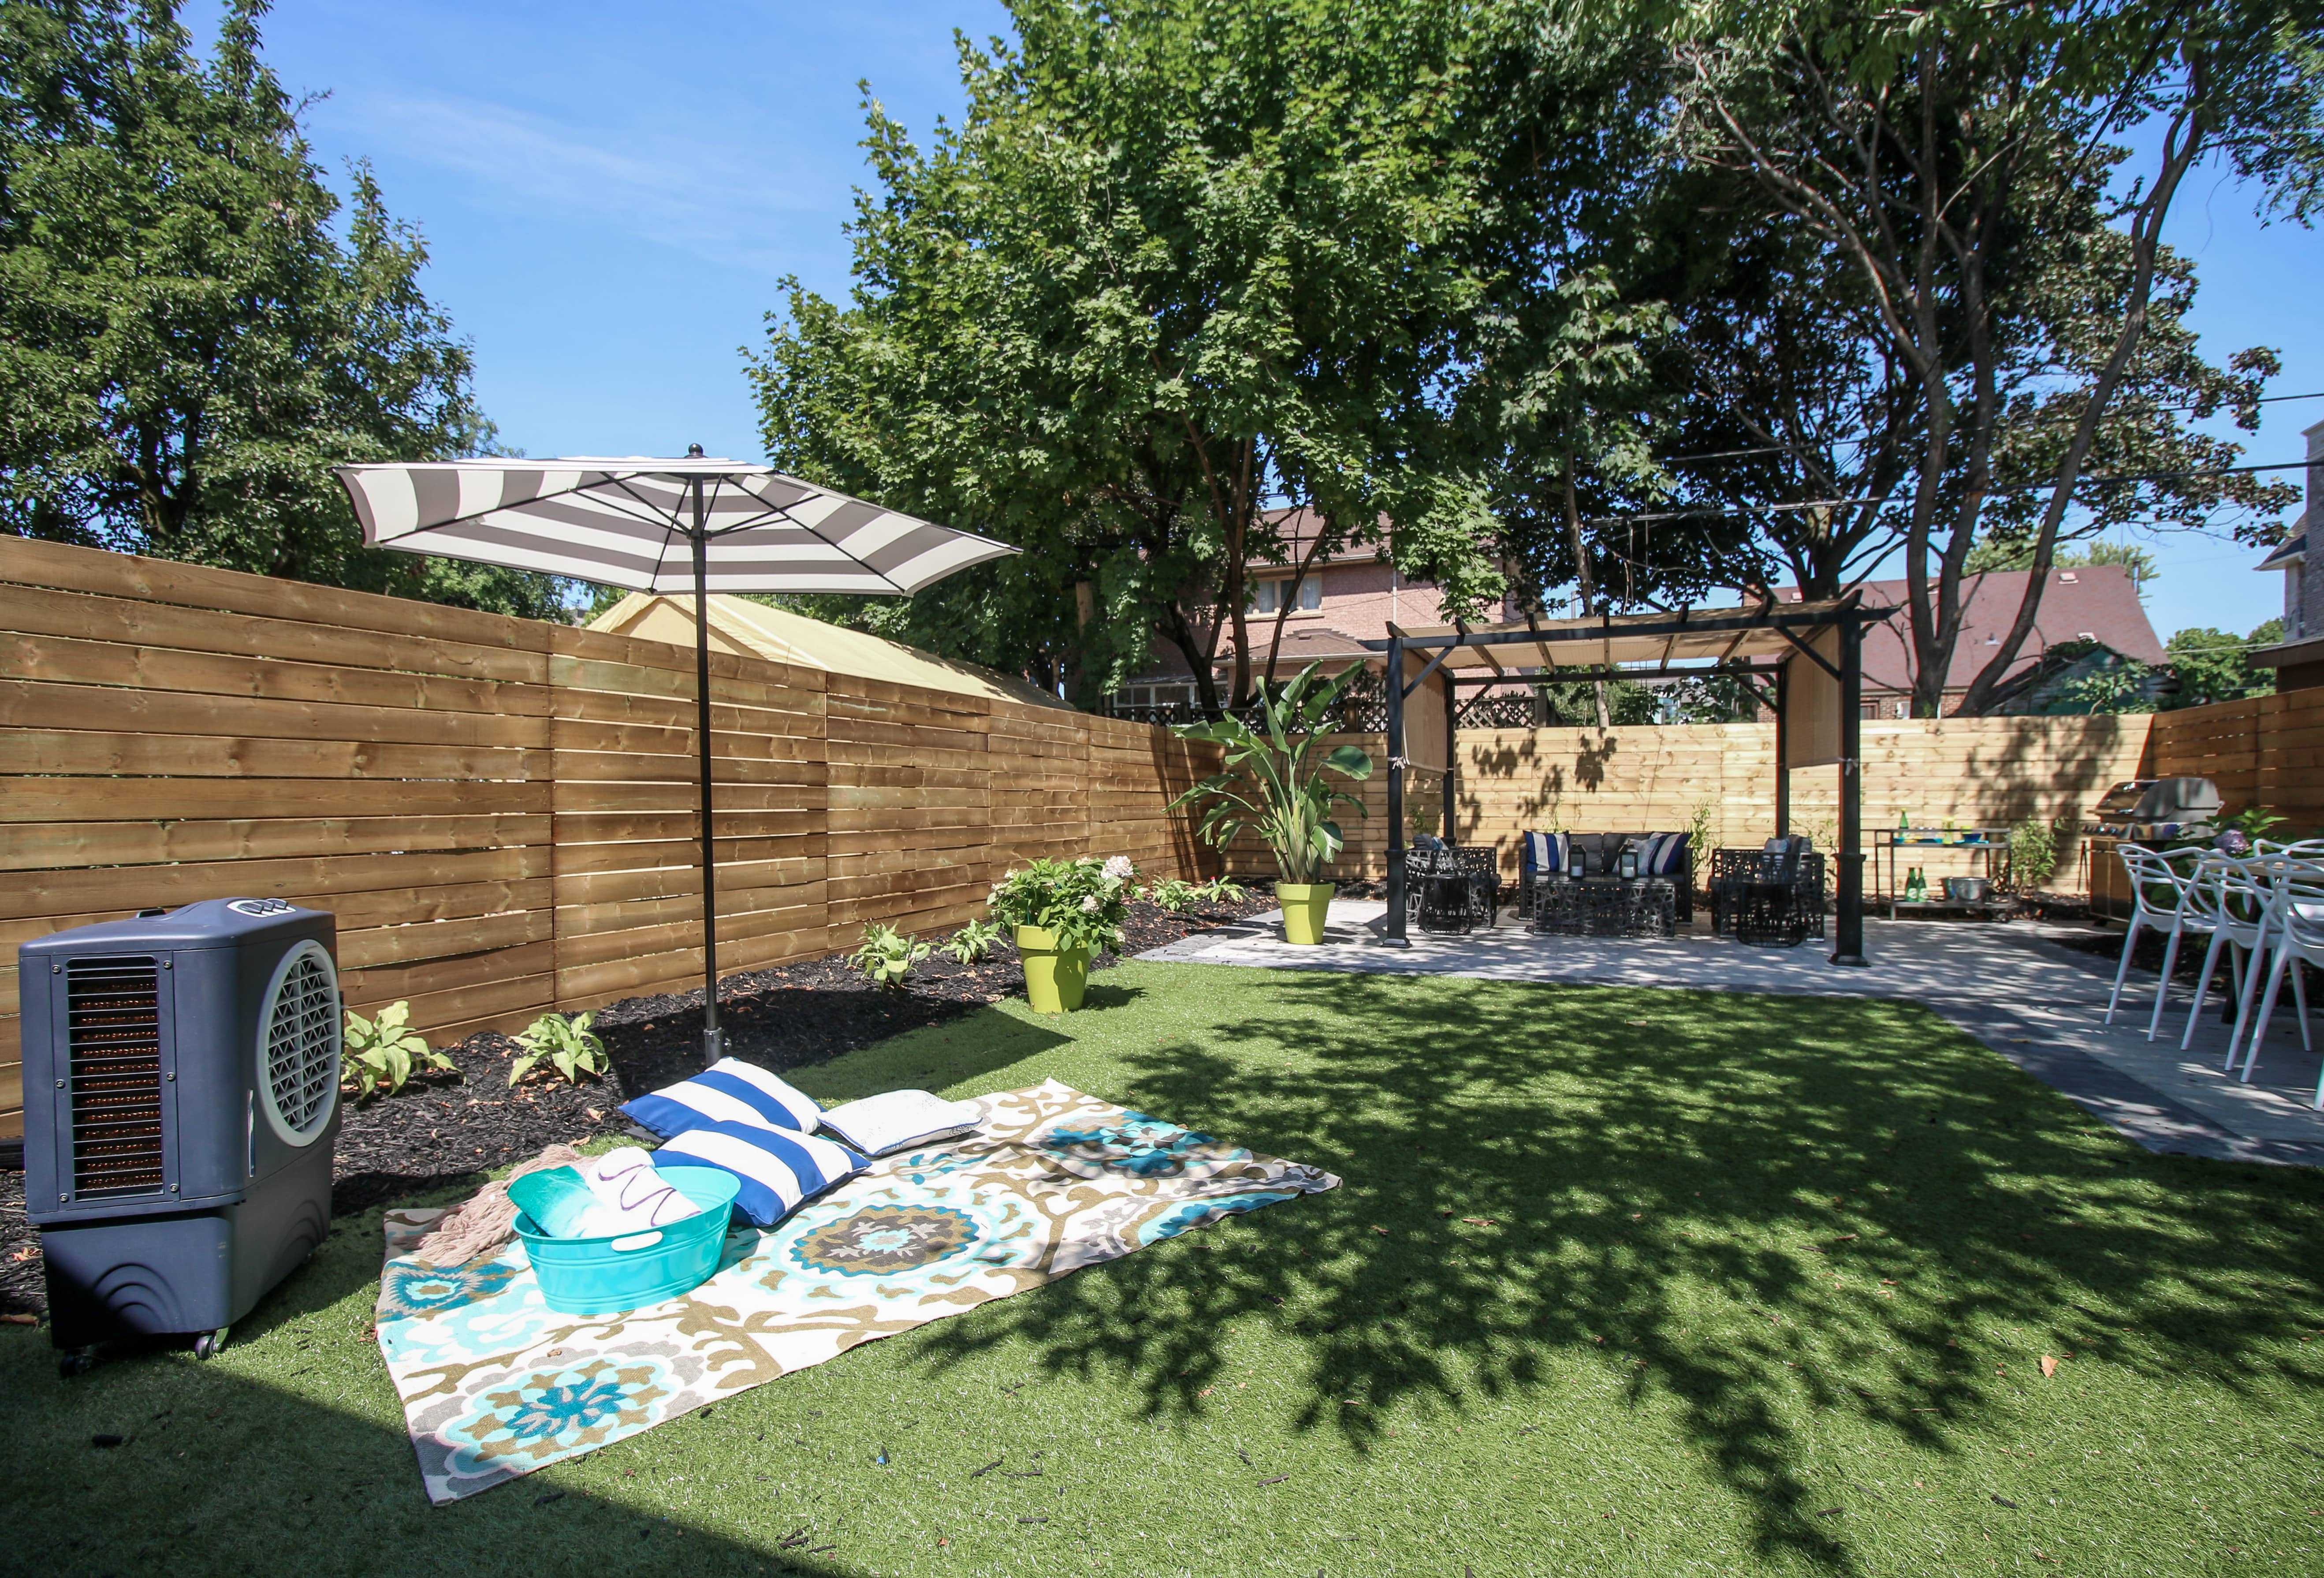 Kid-friendly backyard ideas encourage outdoor play, which contribute to overall physical and mental health. Frequent outdoor play helps to increase fitness, as well as raise vitamin D levels. Creating a kid-friendly backyard will help ensure your child is enjoying the outdoors during the summer.